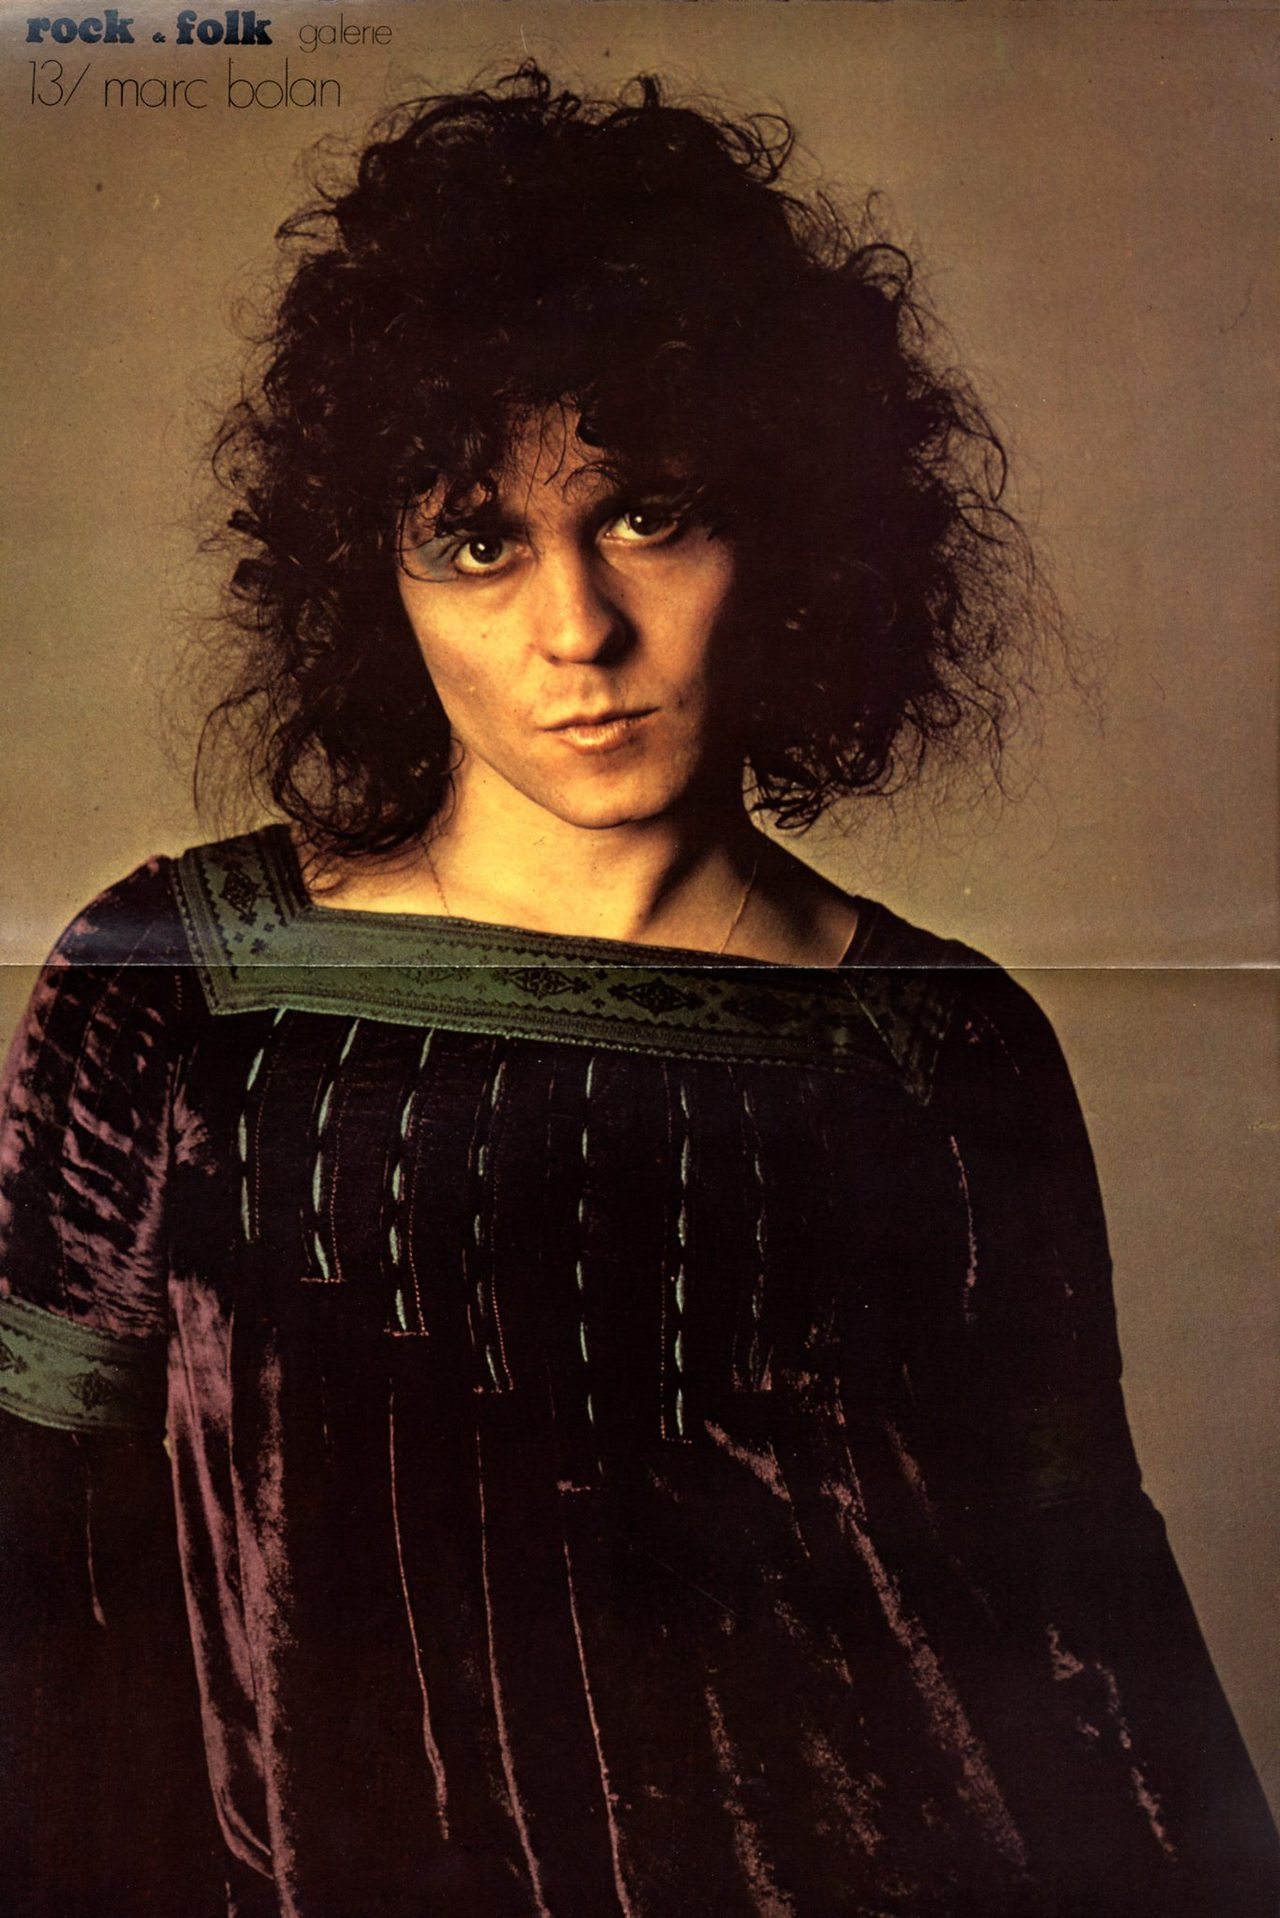 electripipedream: Marc Bolan poster from Rock … – Glamrock